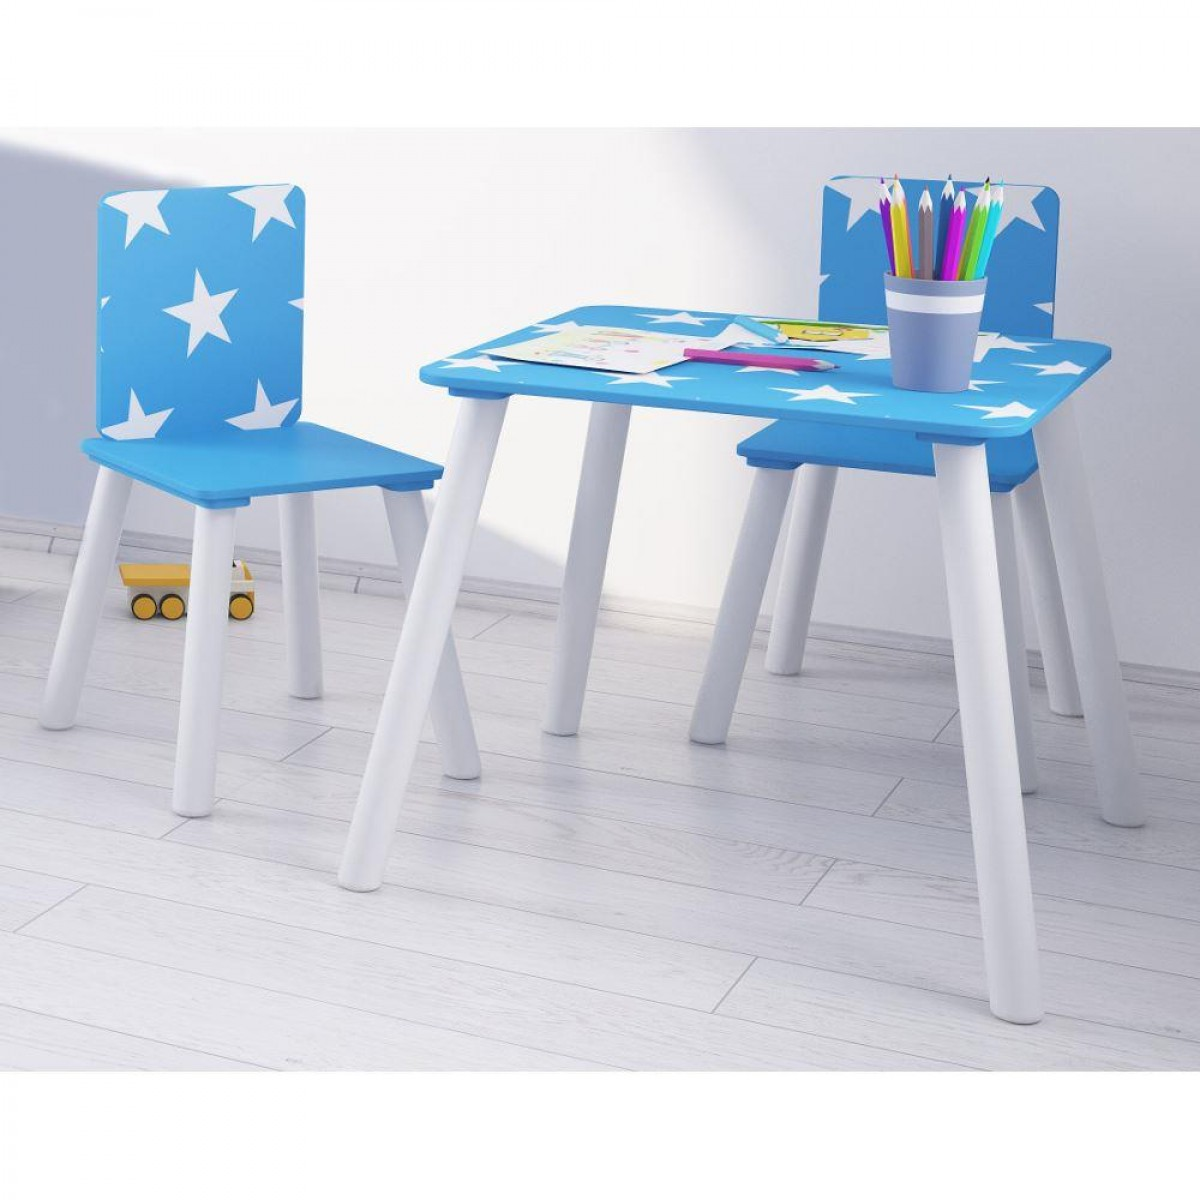 Star Blue and White Table and Chairs